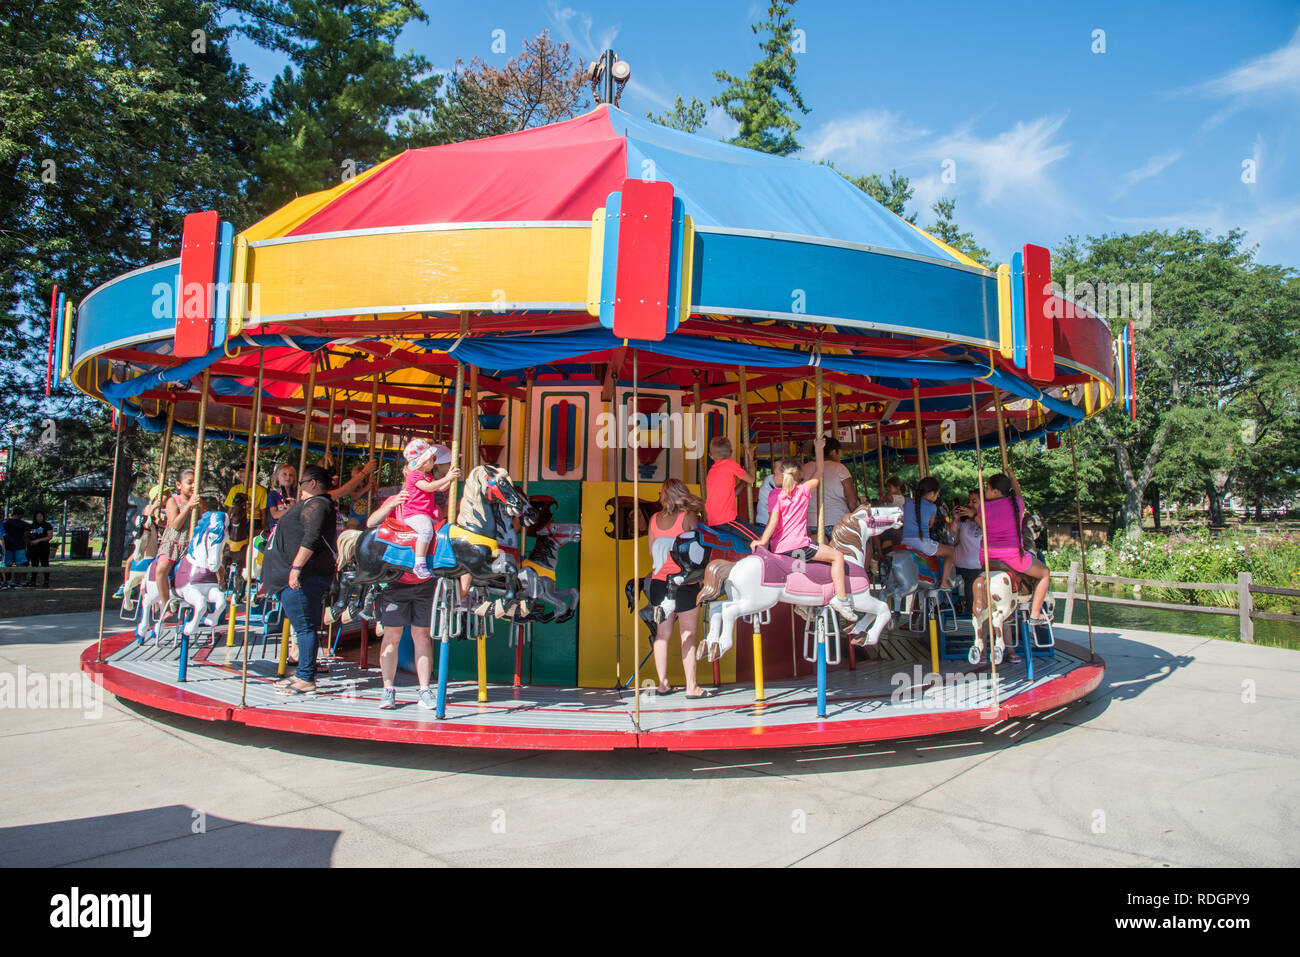 Aurora, Illinois, United States-August 9, 2017: Parents and children on the carousel ride on a sunny day at Blackberry Farm in Aurora, Illinois - Stock Image